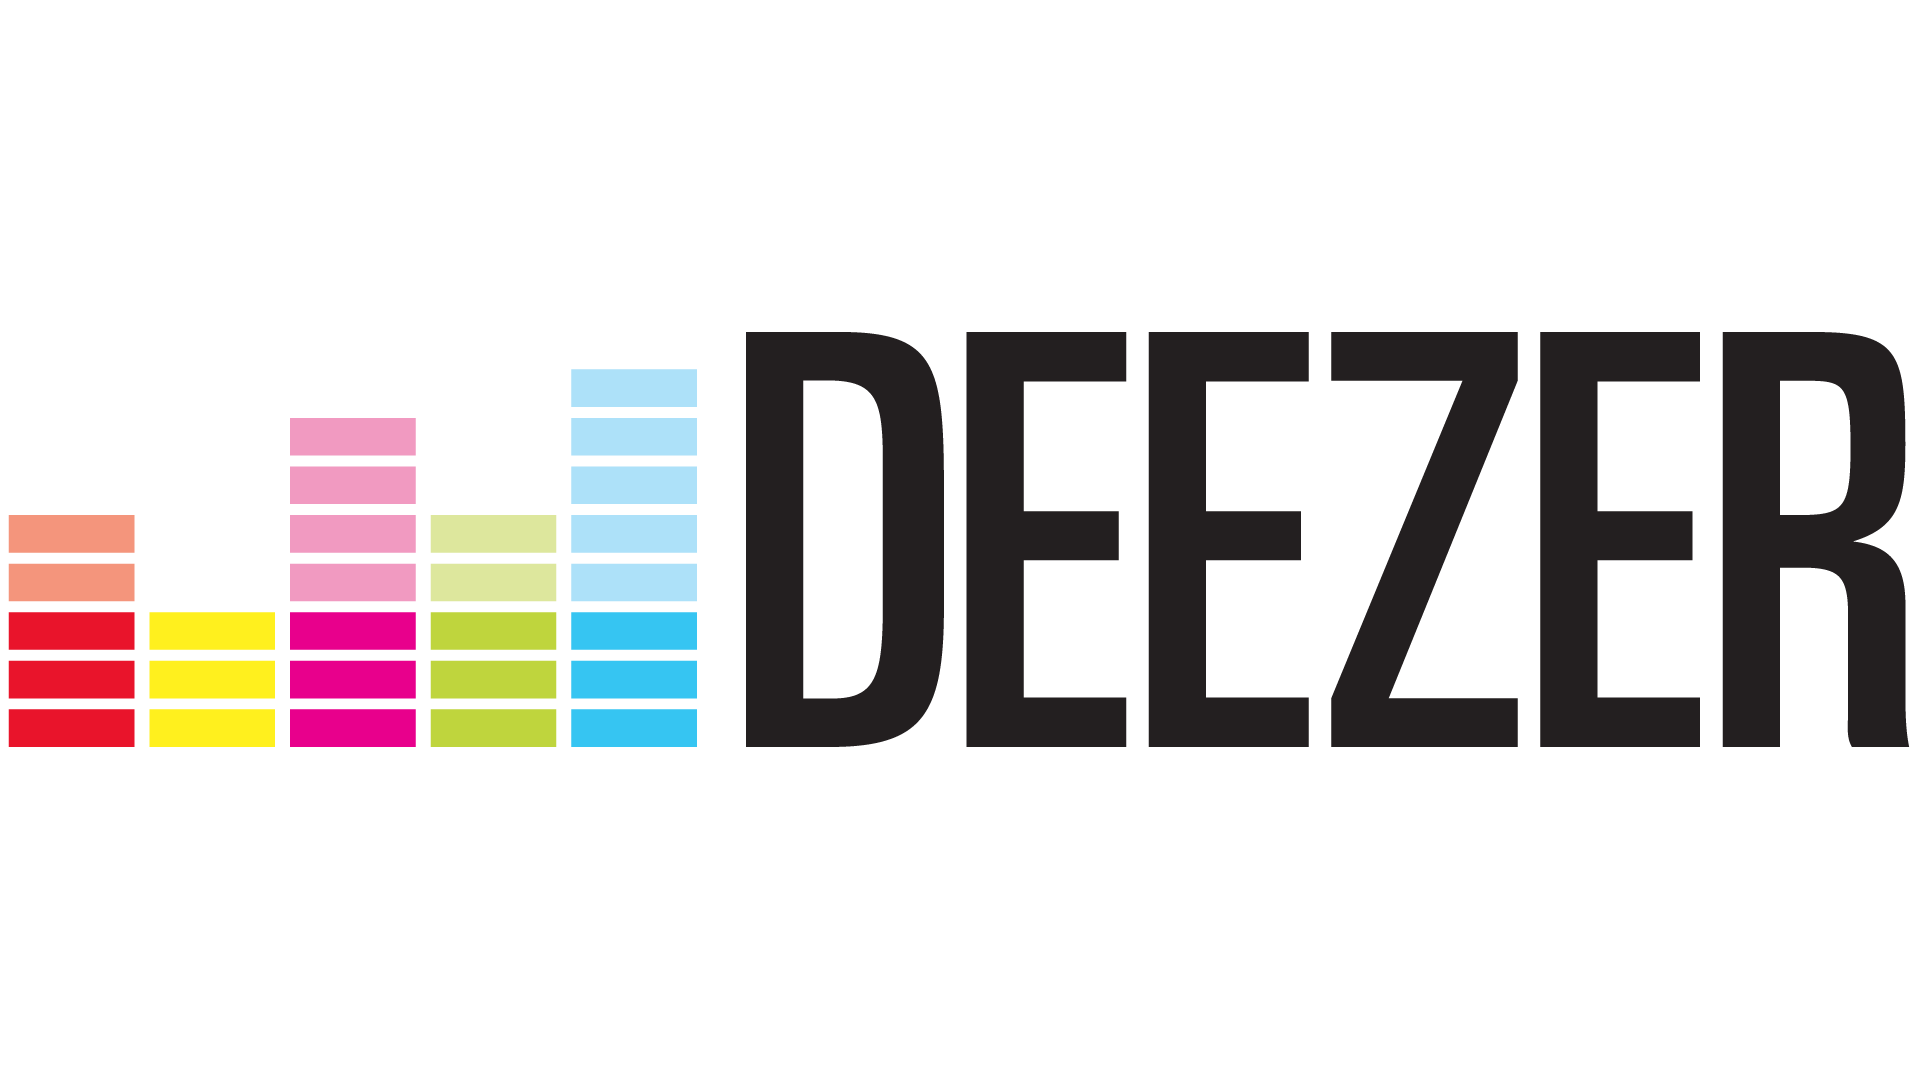 Stickpng deezer. Amazon logo png transparent background image library download